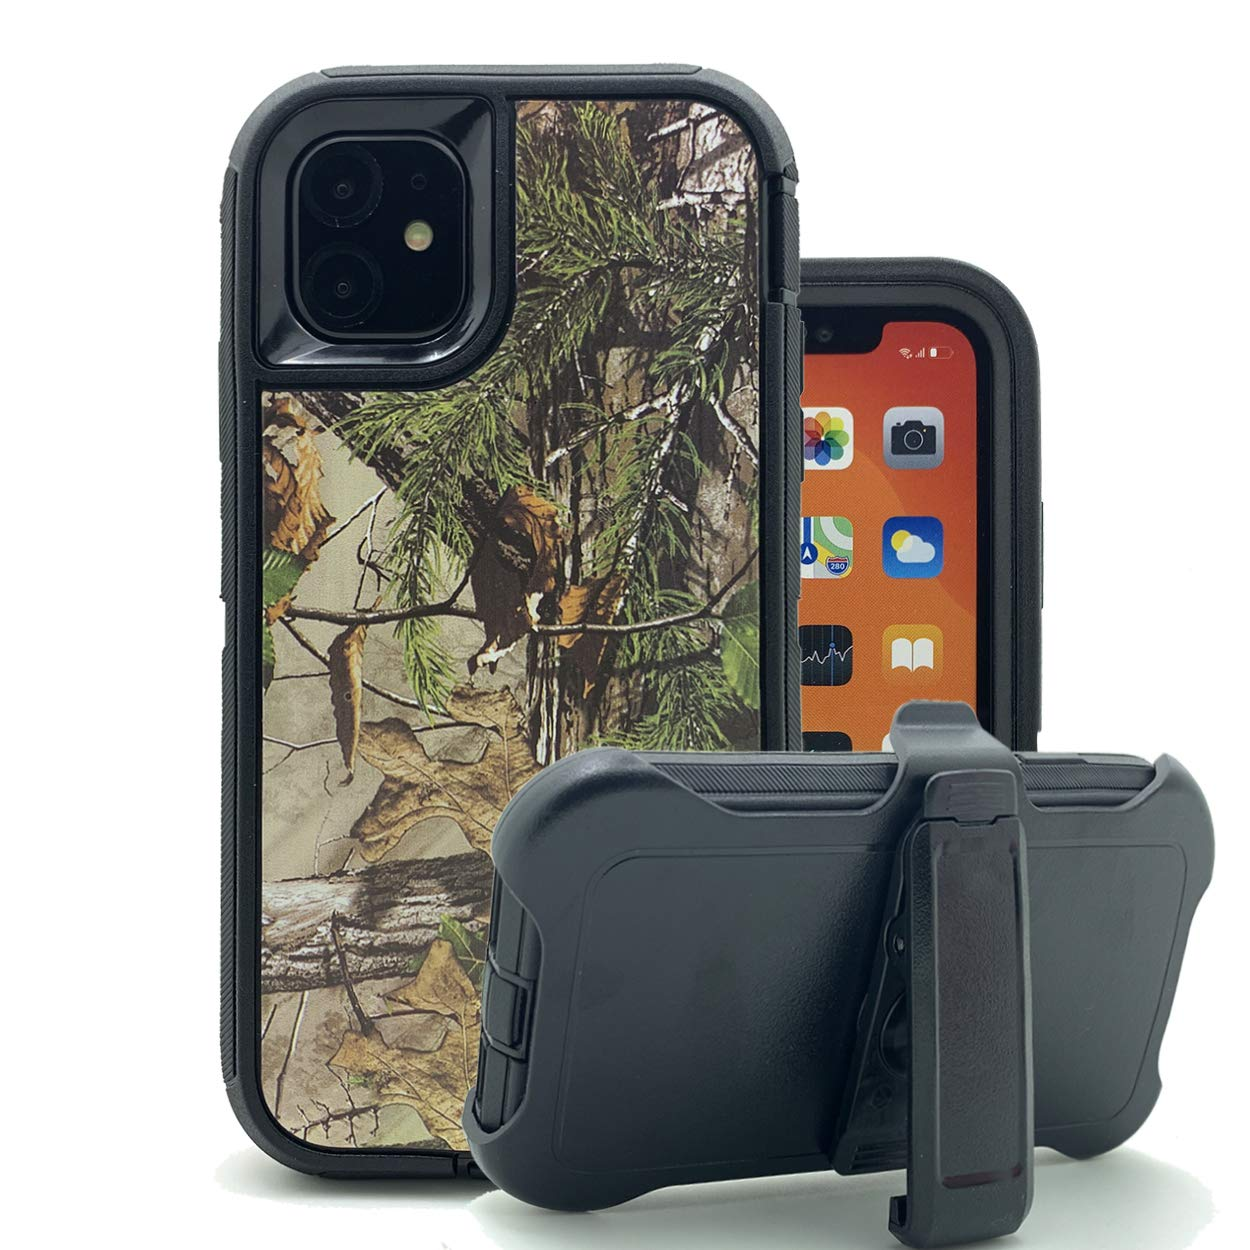 iPhone 11 Cover, Harsel Heavy Duty Scratch Resistant Defender Camouflage Hybrid Armor Military Grade Protection Shockproof Durable Case Shell with Belt Clip for iPhone 11 (Forest Black)